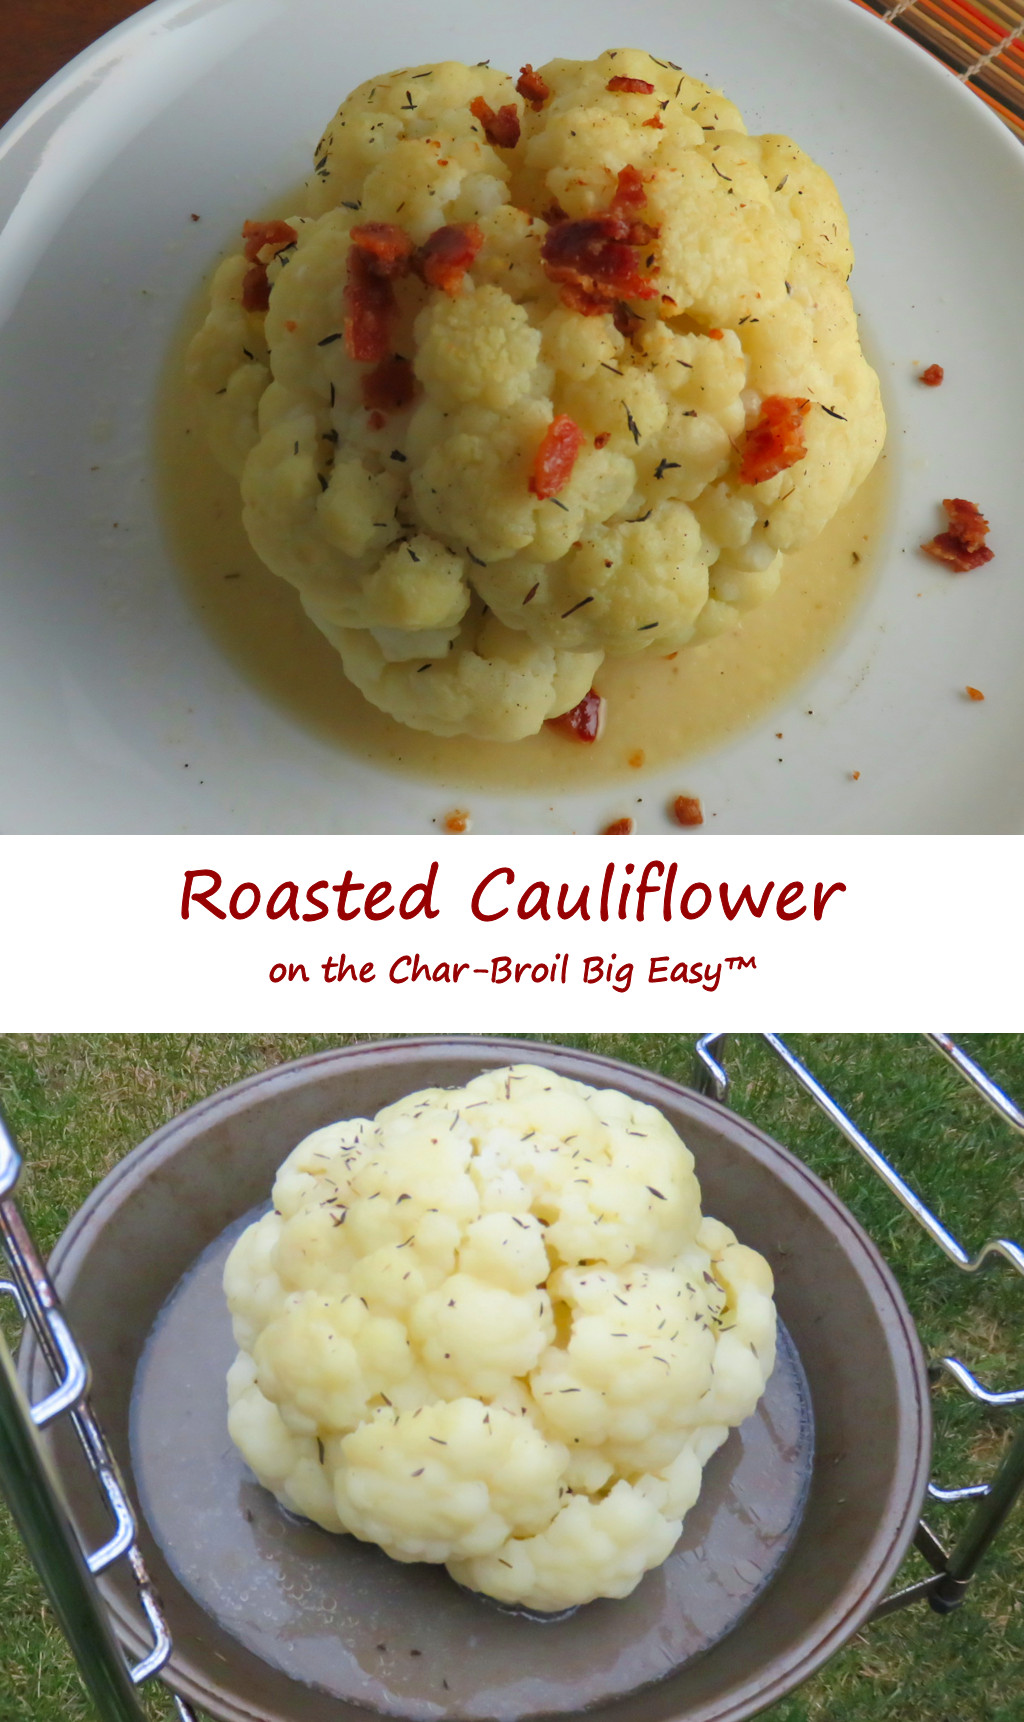 roasted-cauliflower-on-the-char-broil-big-easy